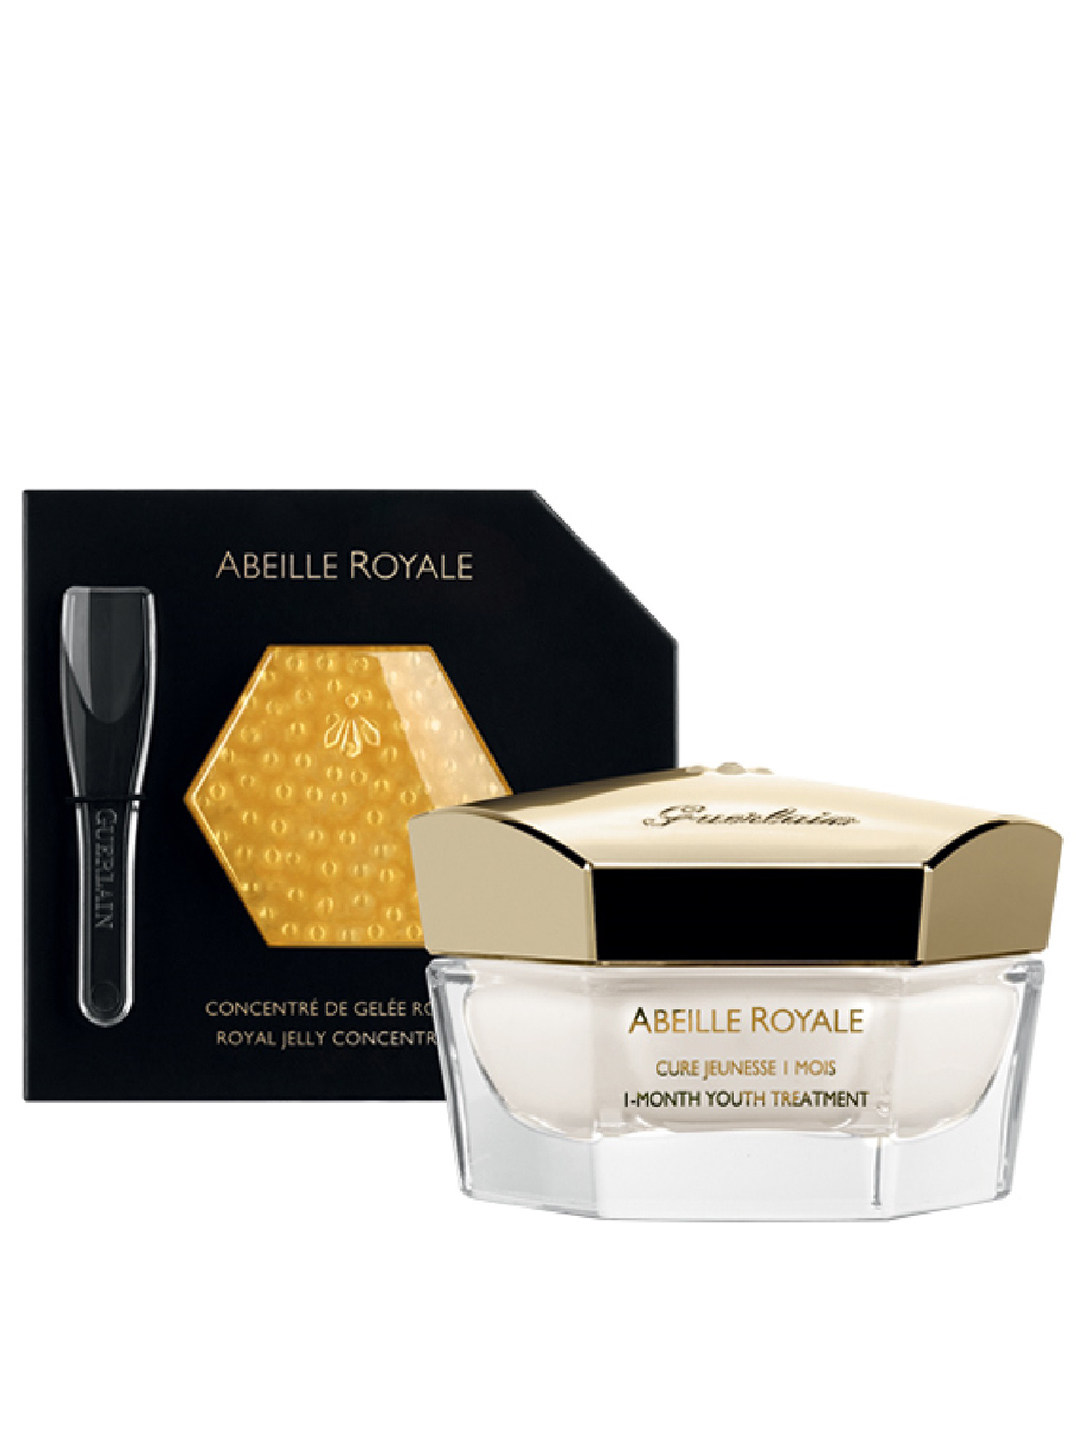 GUERLAIN Abeille Royale Youth Treatment Beauty